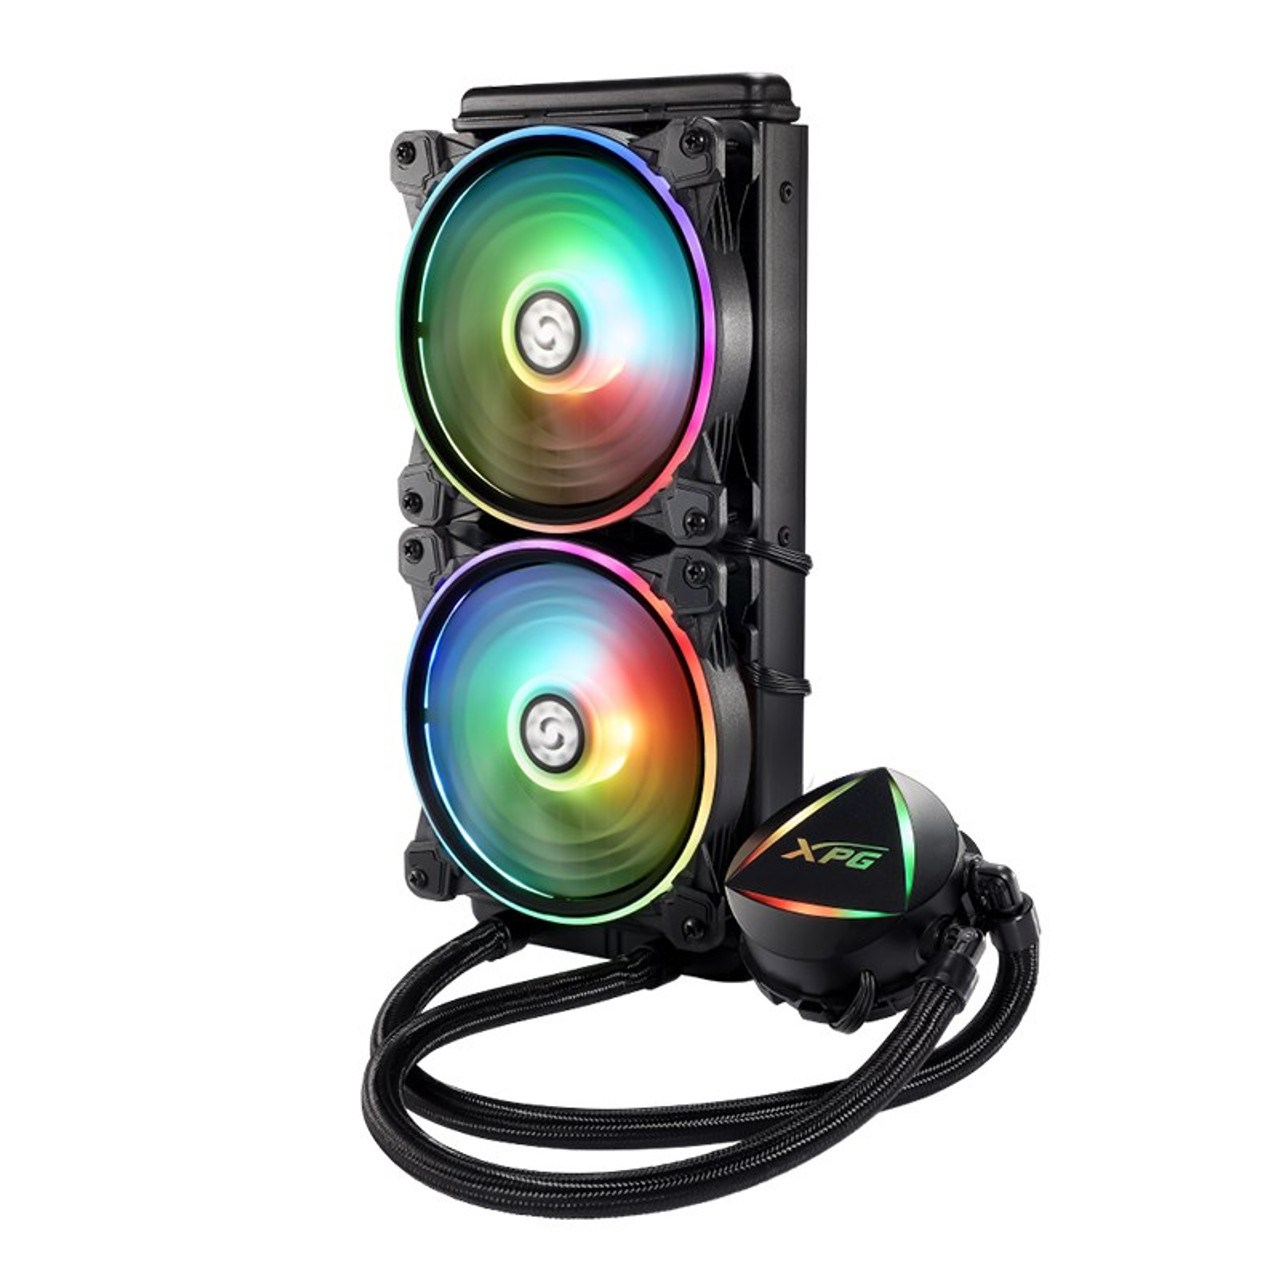 Image for Adata XPG Levante 240 ARGB LED 240mm All-in-One Liquid CPU Cooler CX Computer Superstore